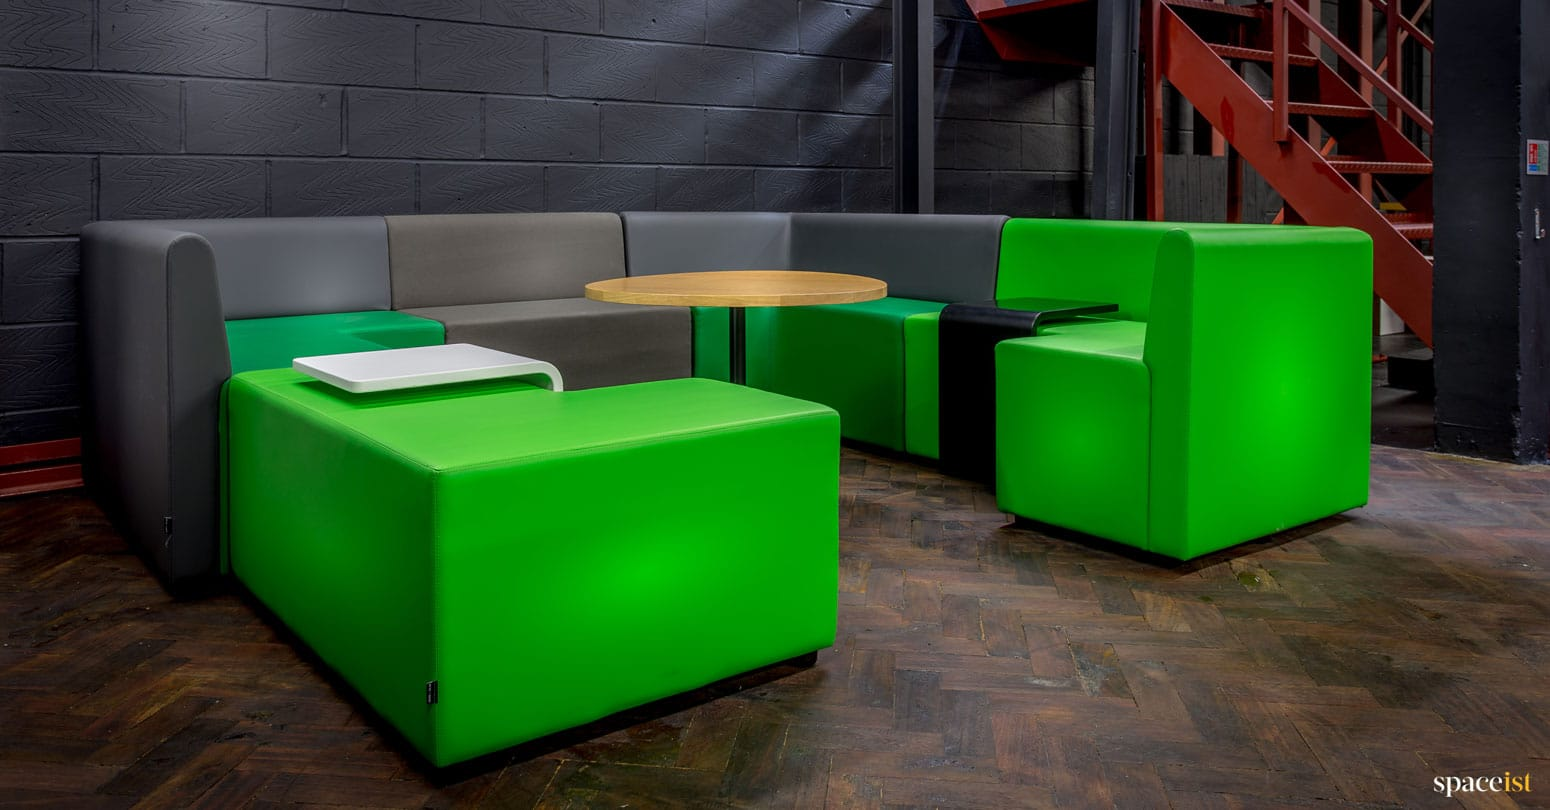 spaceist showroom green modular cubes